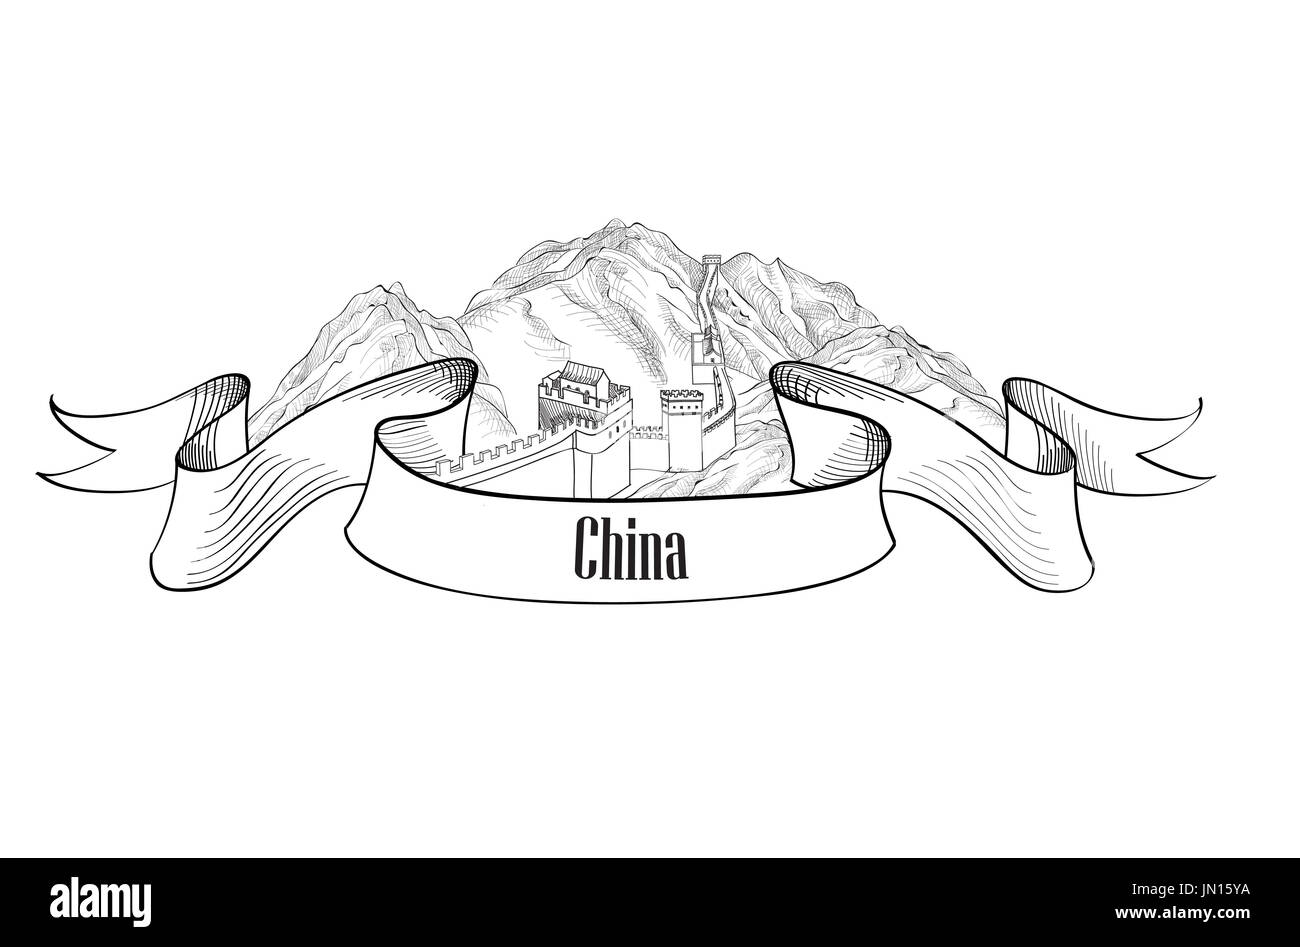 China label. Travel Asia label. The Great Wall of China symbol sketch isolated. - Stock Image